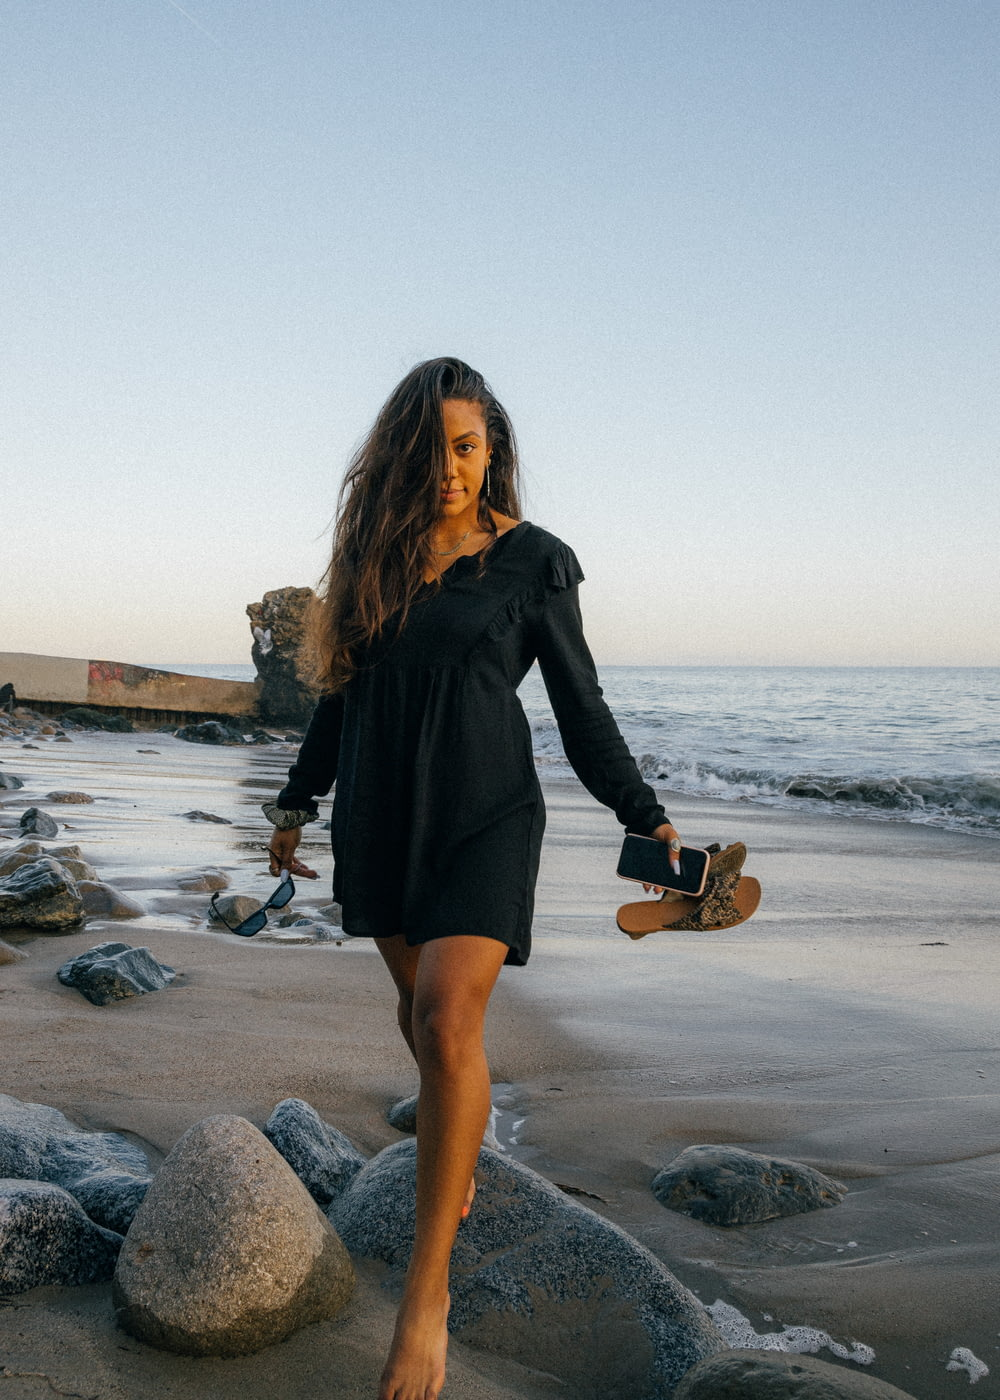 woman in black long sleeve dress holding brown acoustic guitar standing on gray rock near body